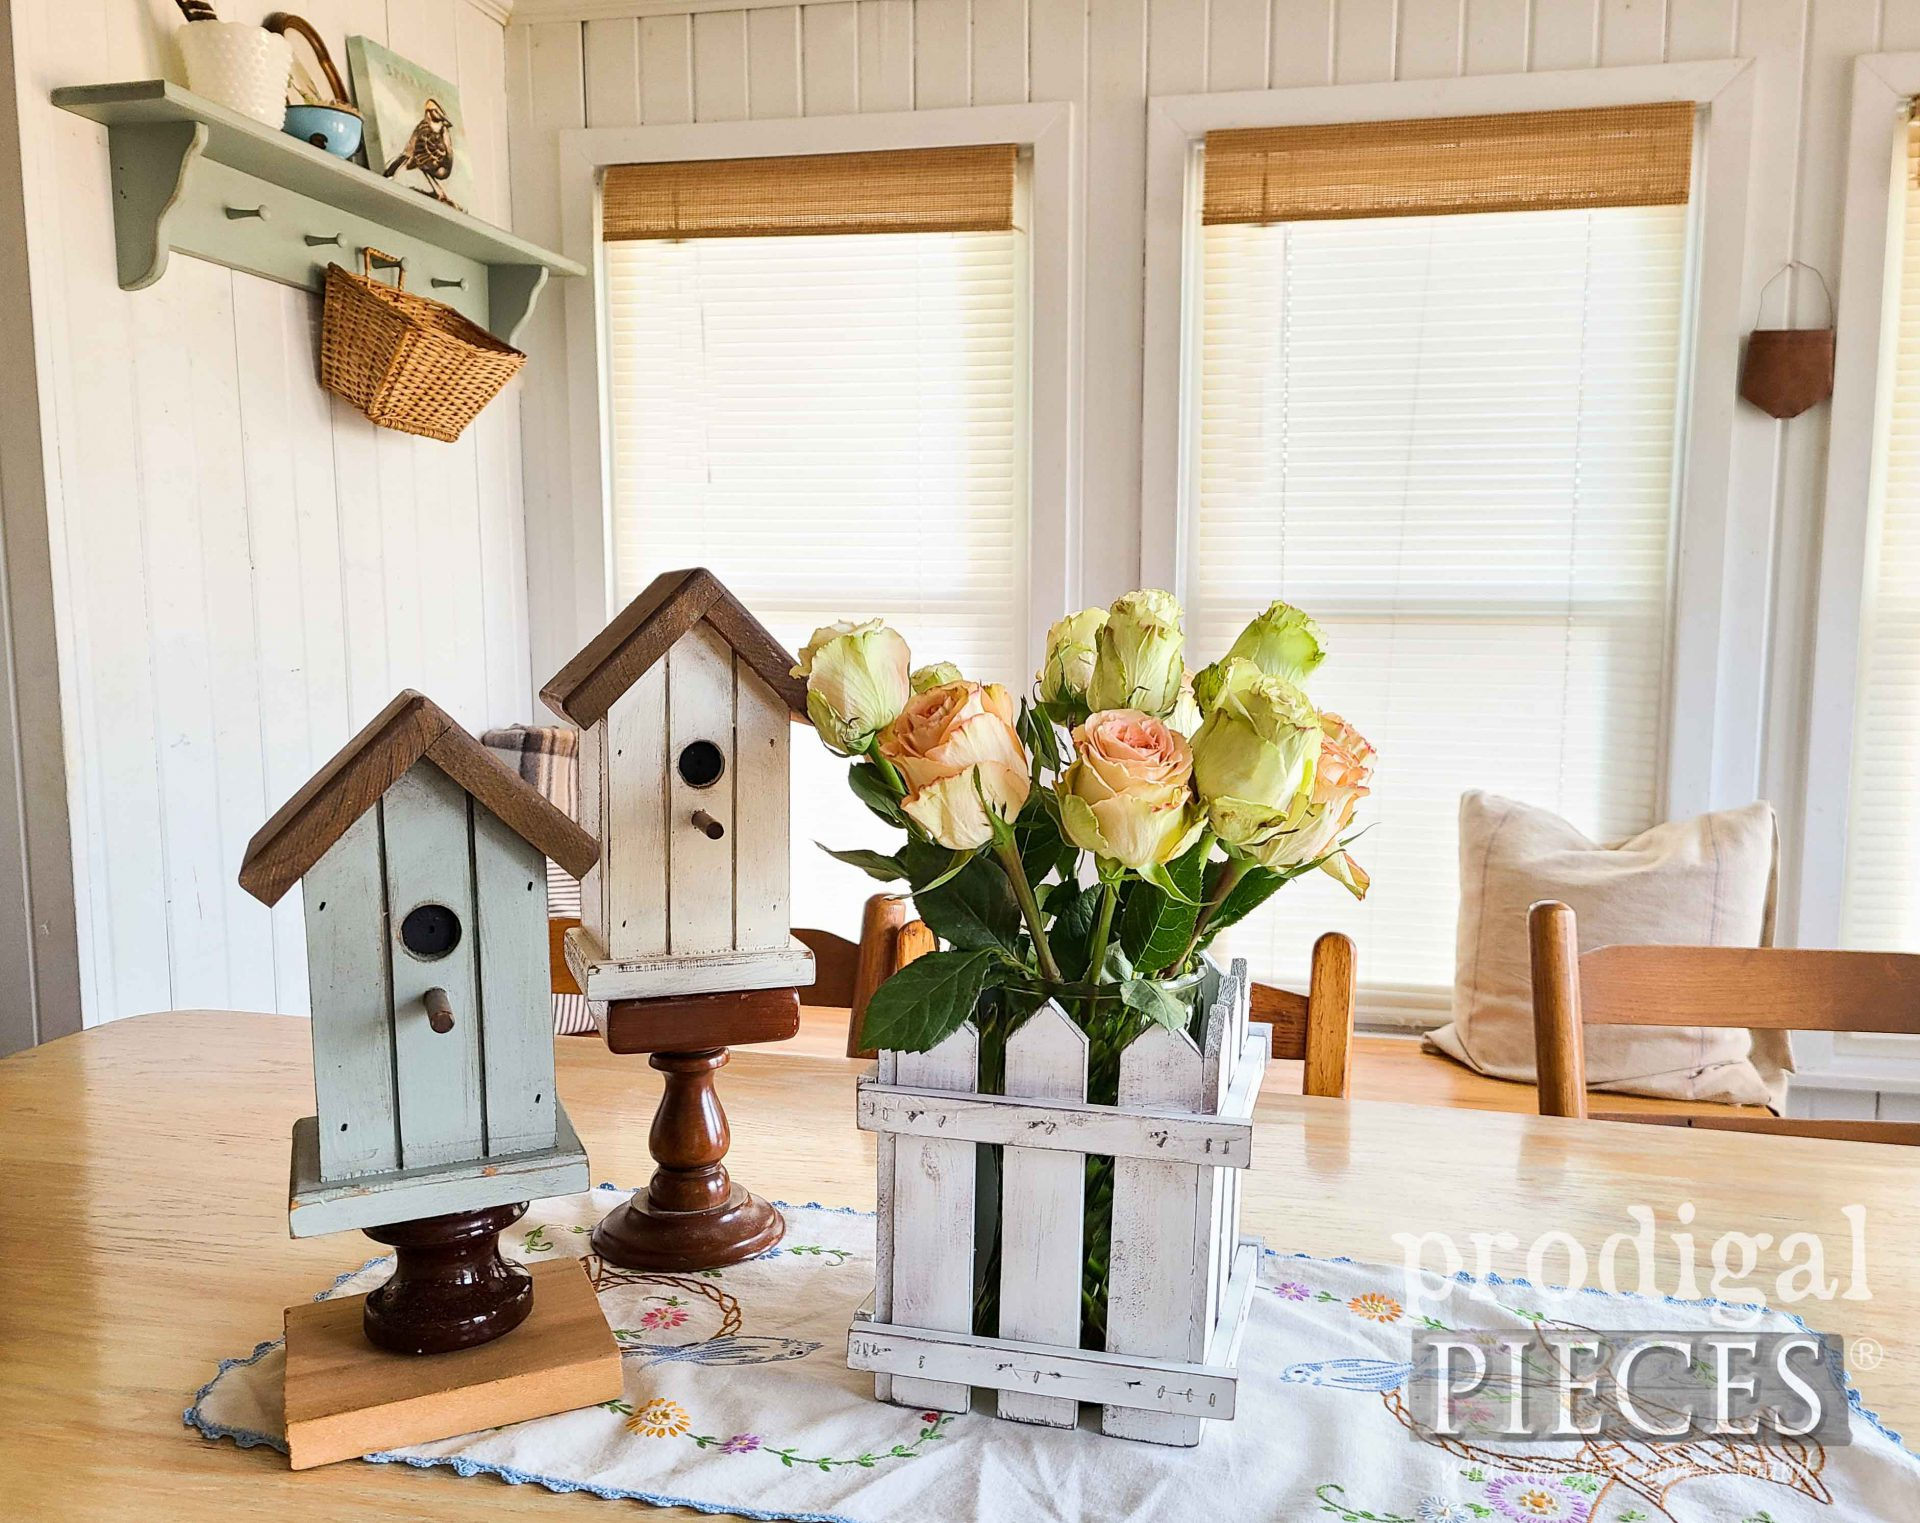 Simple Spring Home Decor from Upcycled Vintage Shelf by Larissa of Prodigal Pieces   prodigalpieces.com #prodigalpieces #diy #home #homedecor #vintage